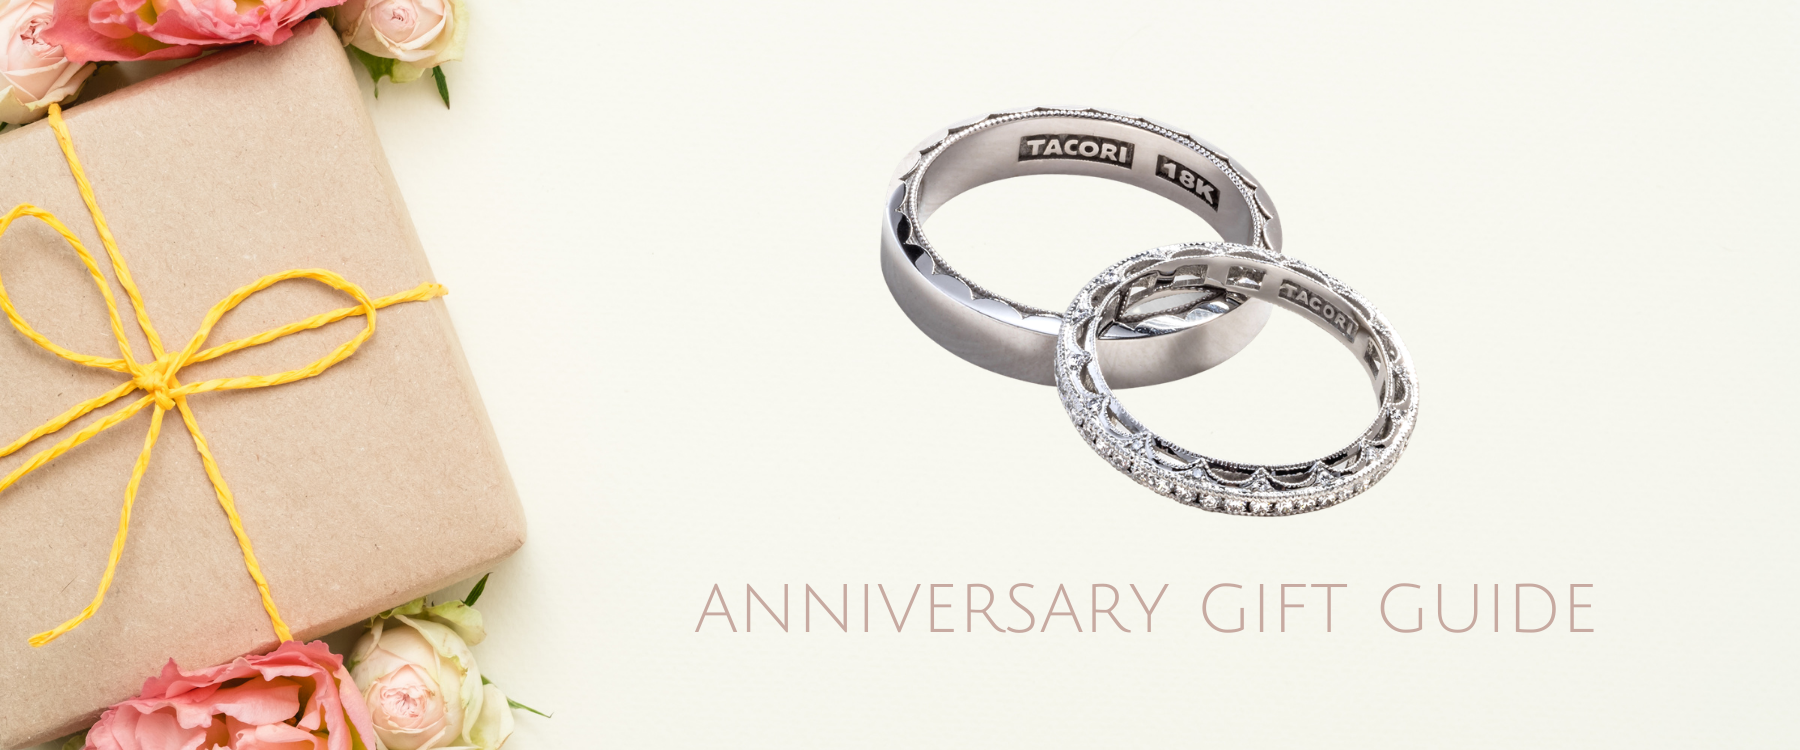 Peter & Co. Jewelers in Avon Lake, Ohio is the perfect place for your anniversary gifts.  Whether it is your first or your 50th